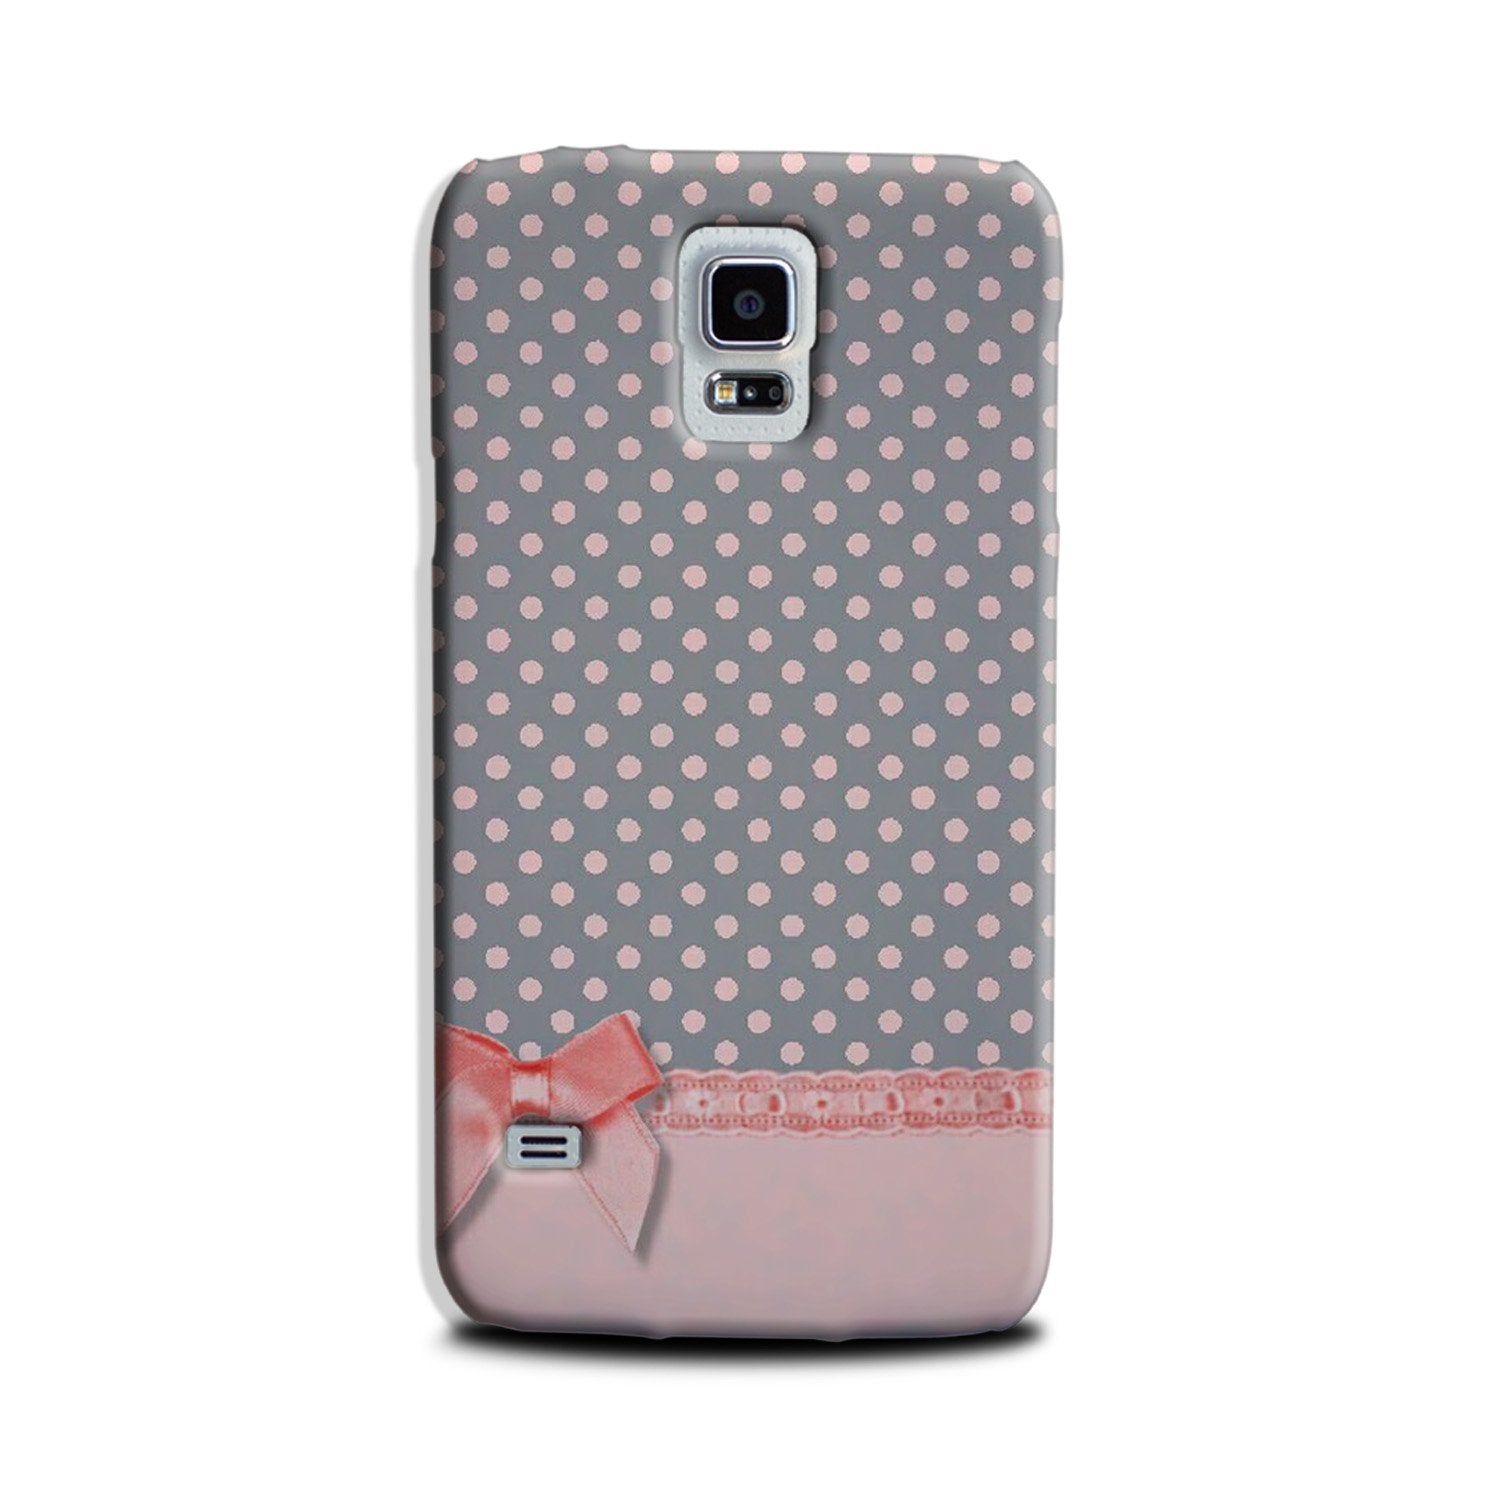 Gift Wrap2 Case for Galaxy S5